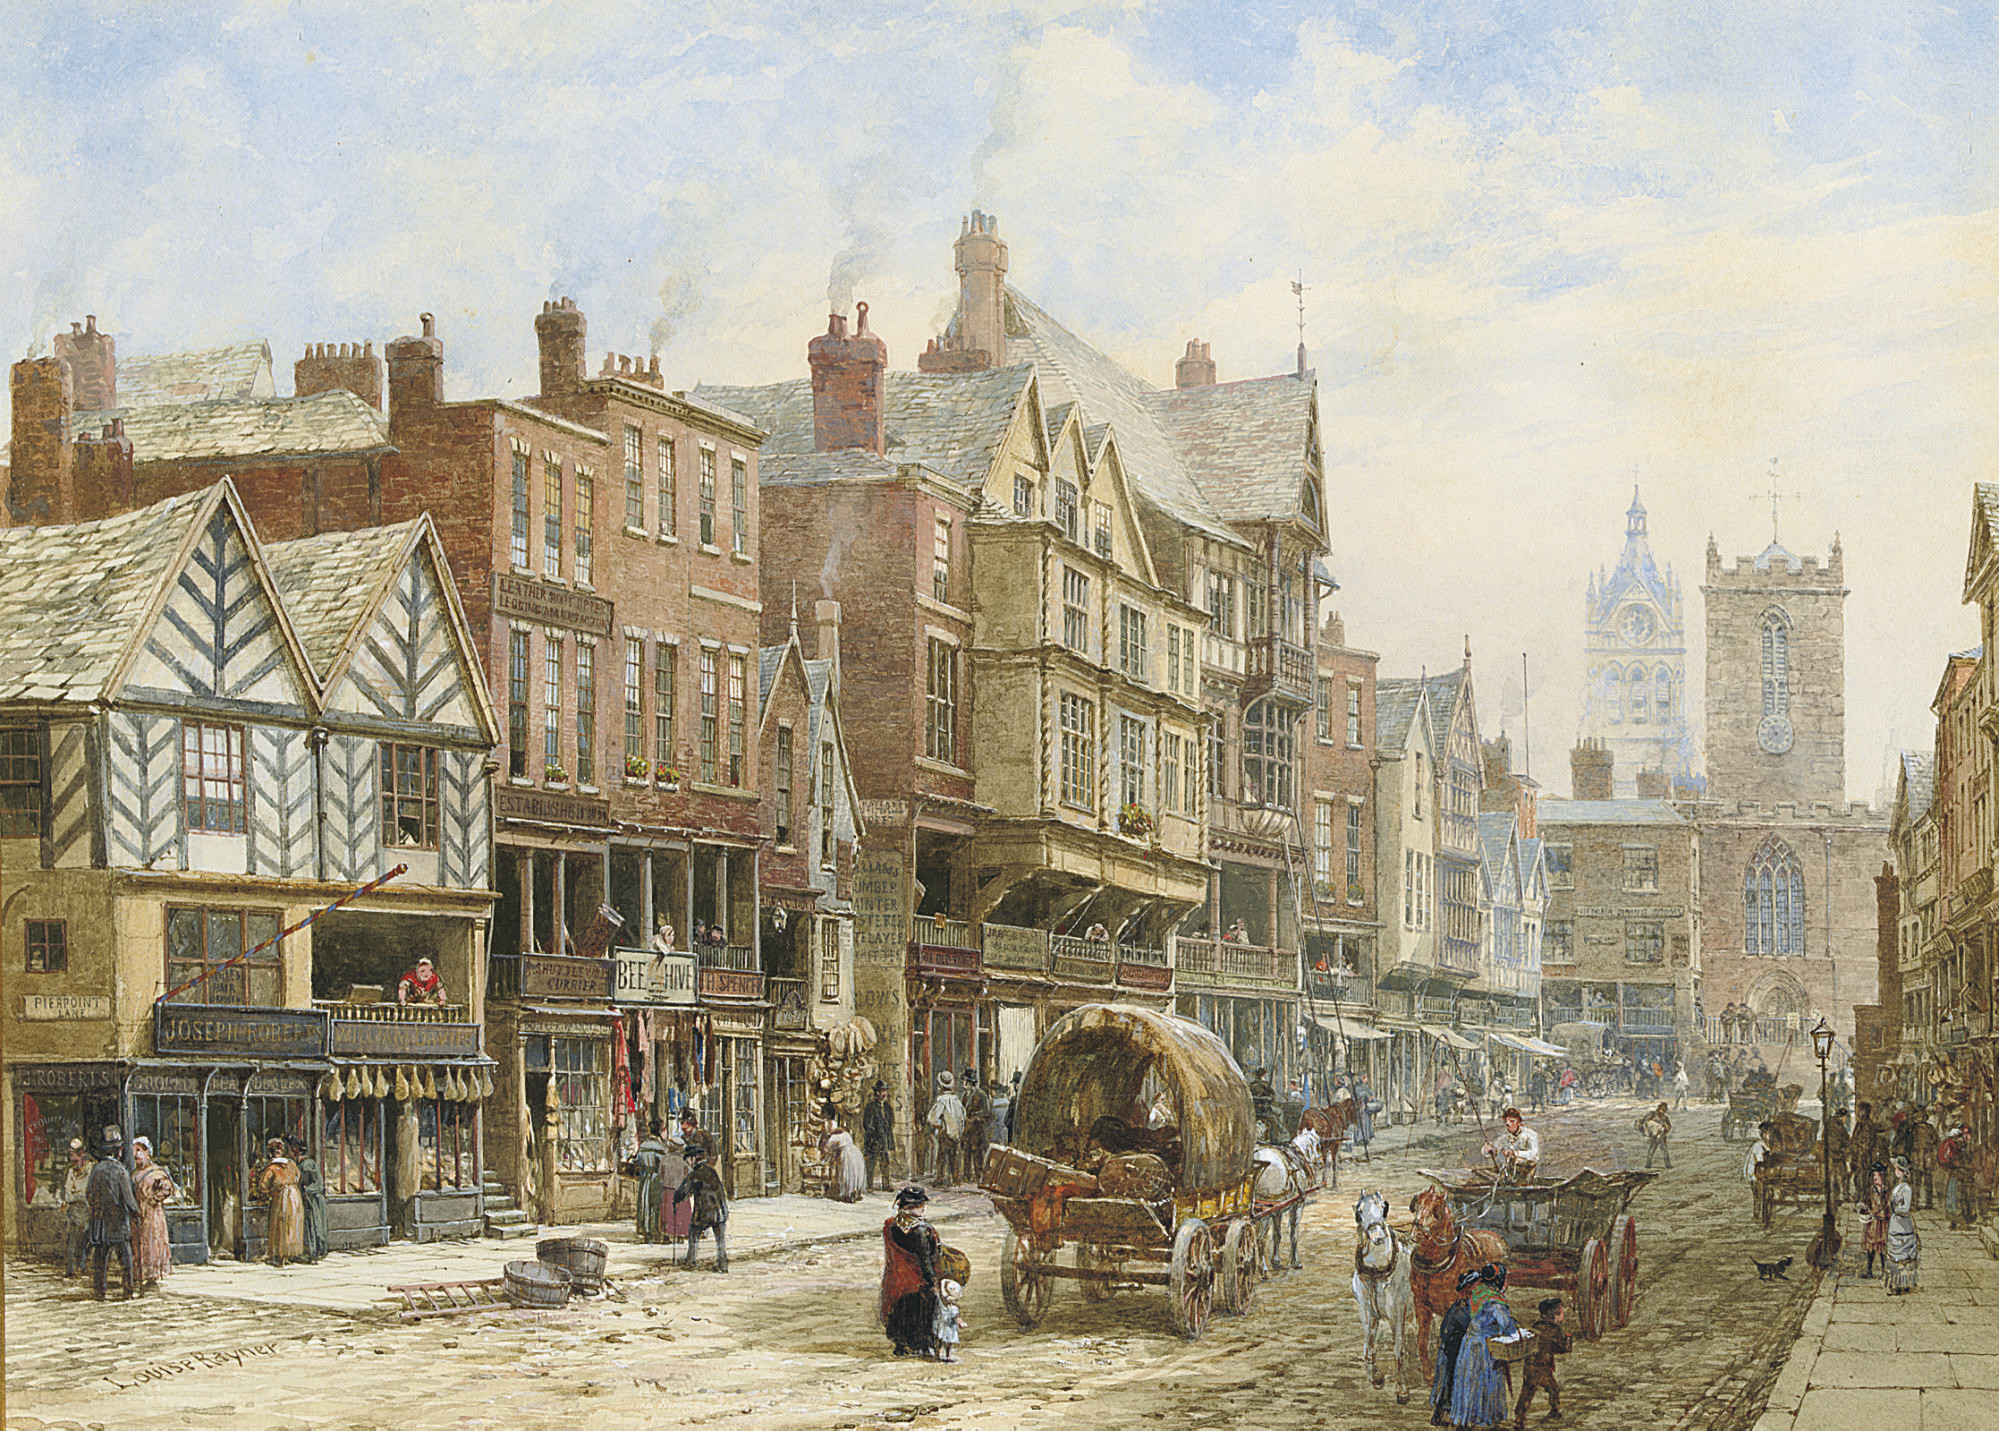 Bridge Street, Chester, with St. Peter's Church and Chester Town Hall in the background